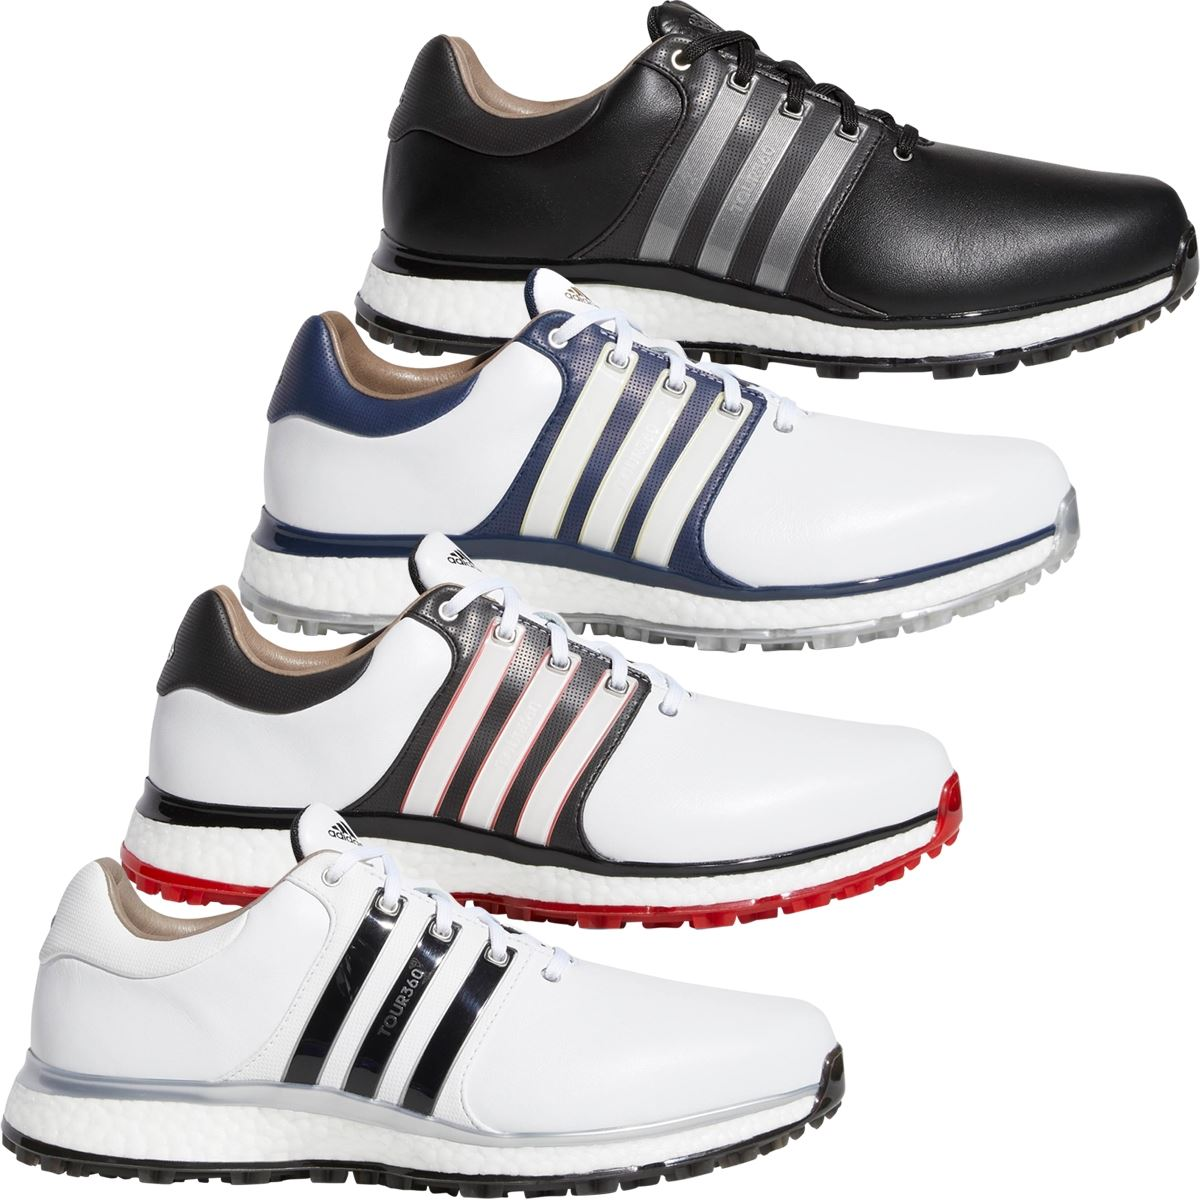 Adidas Tour360 golf shoes for 2019 include a spikeless offering